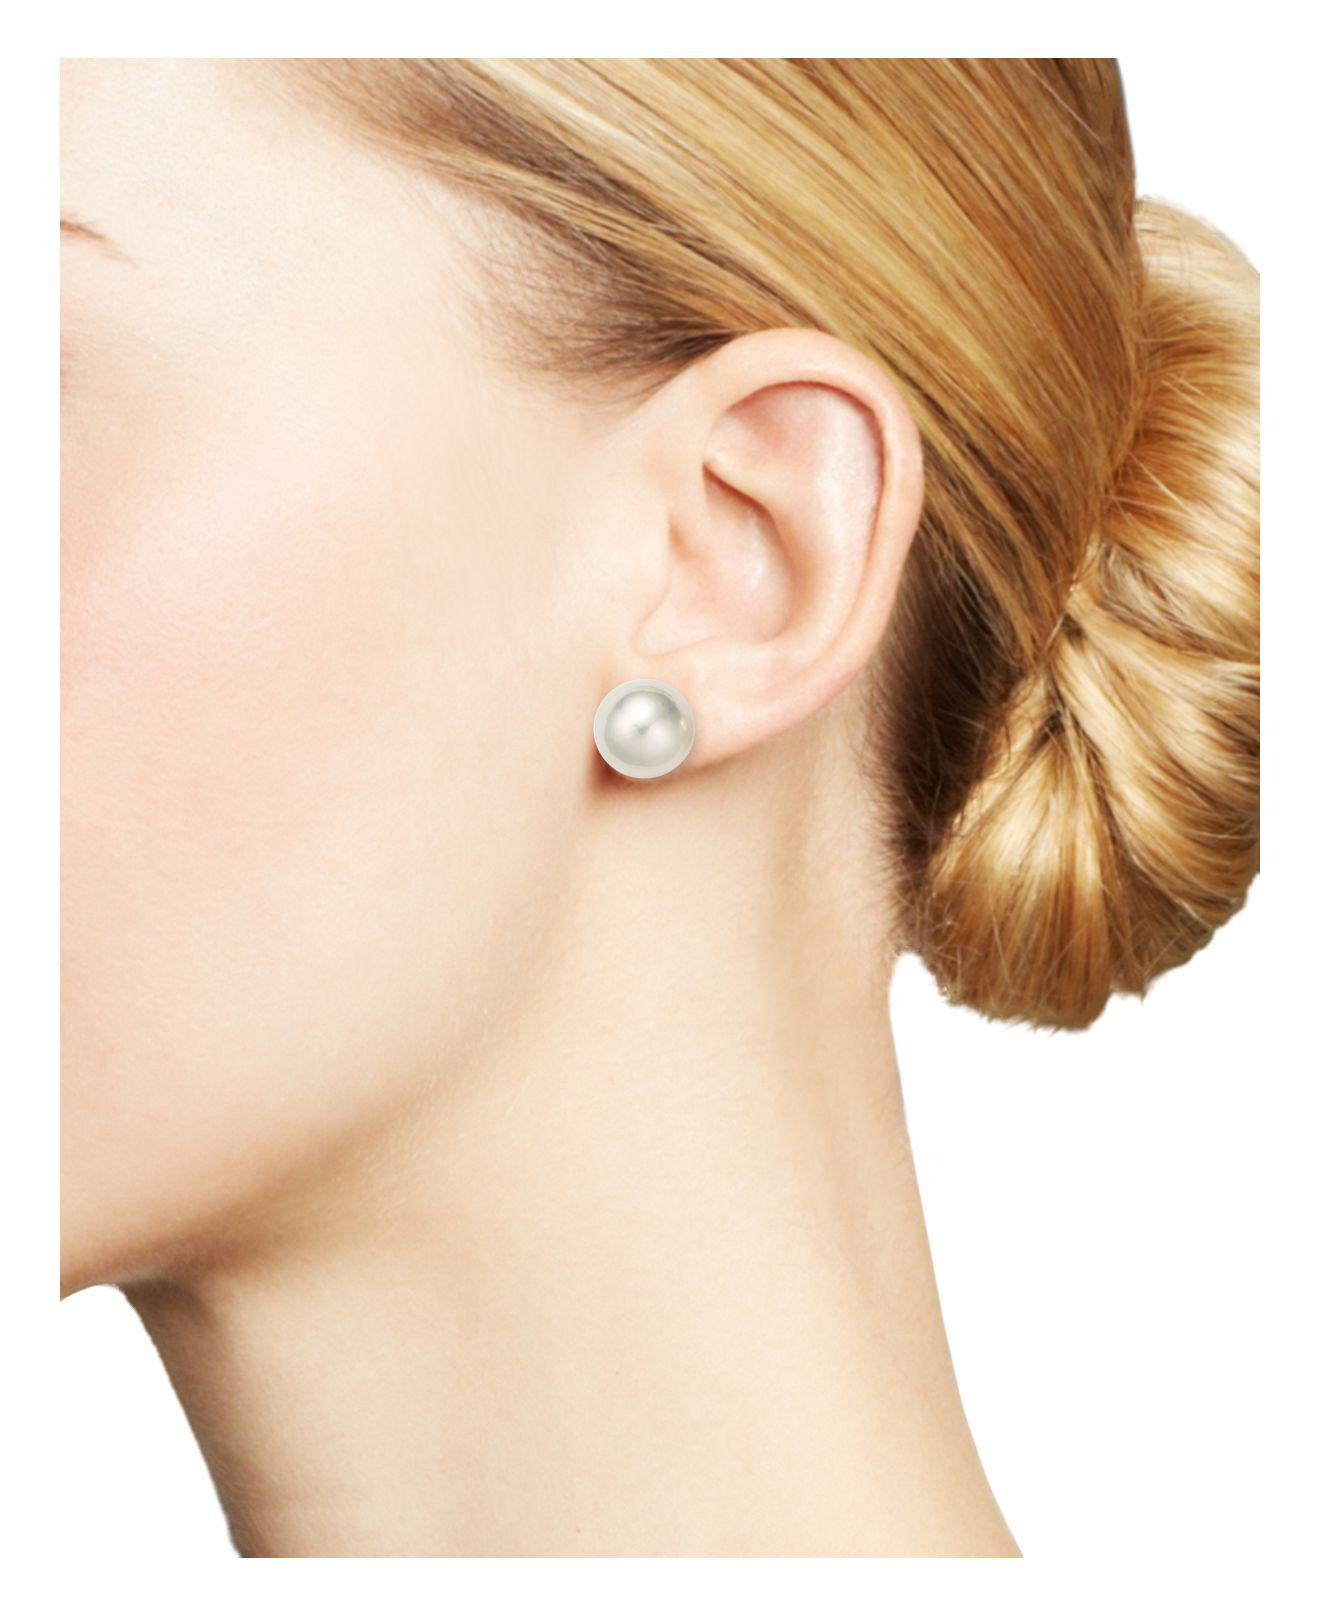 glass stud btd guide earrings queen behind sizing products door the